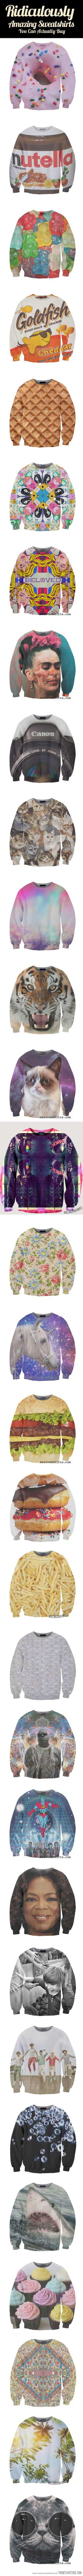 Ridiculous Sweatshirts…I want them all.